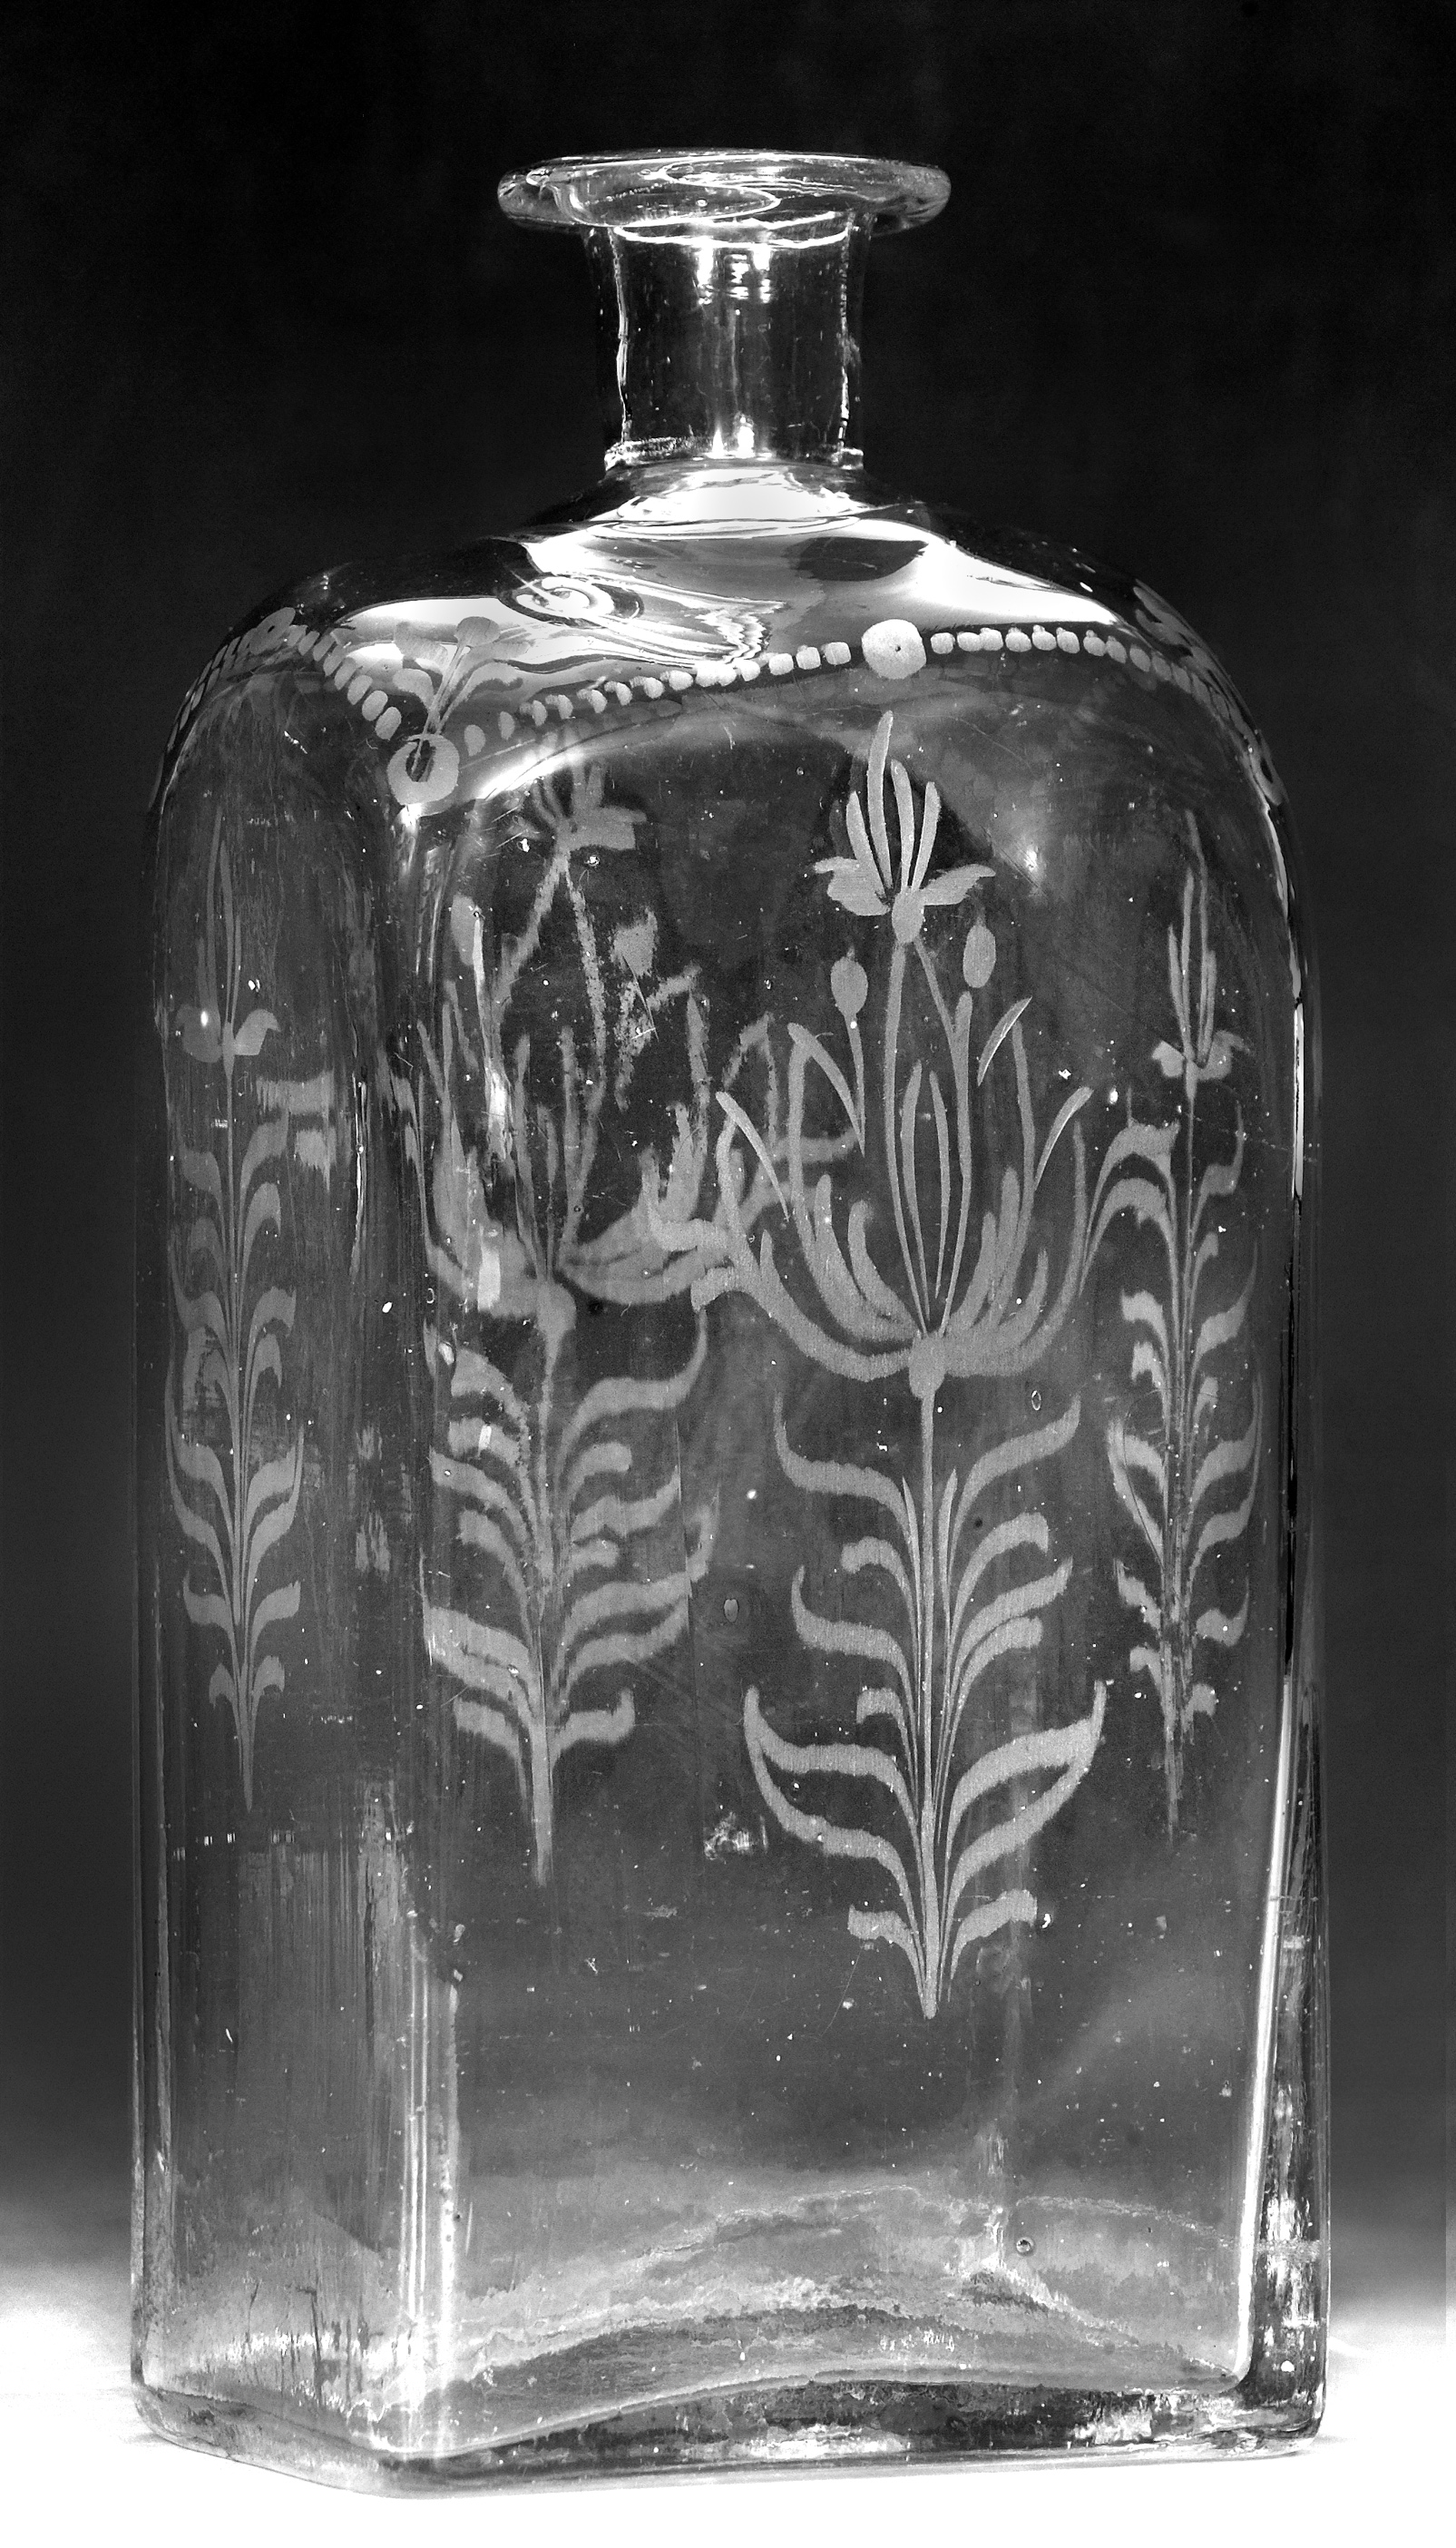 Liquor bottle owned by Moses Rawlings, Late 18th century